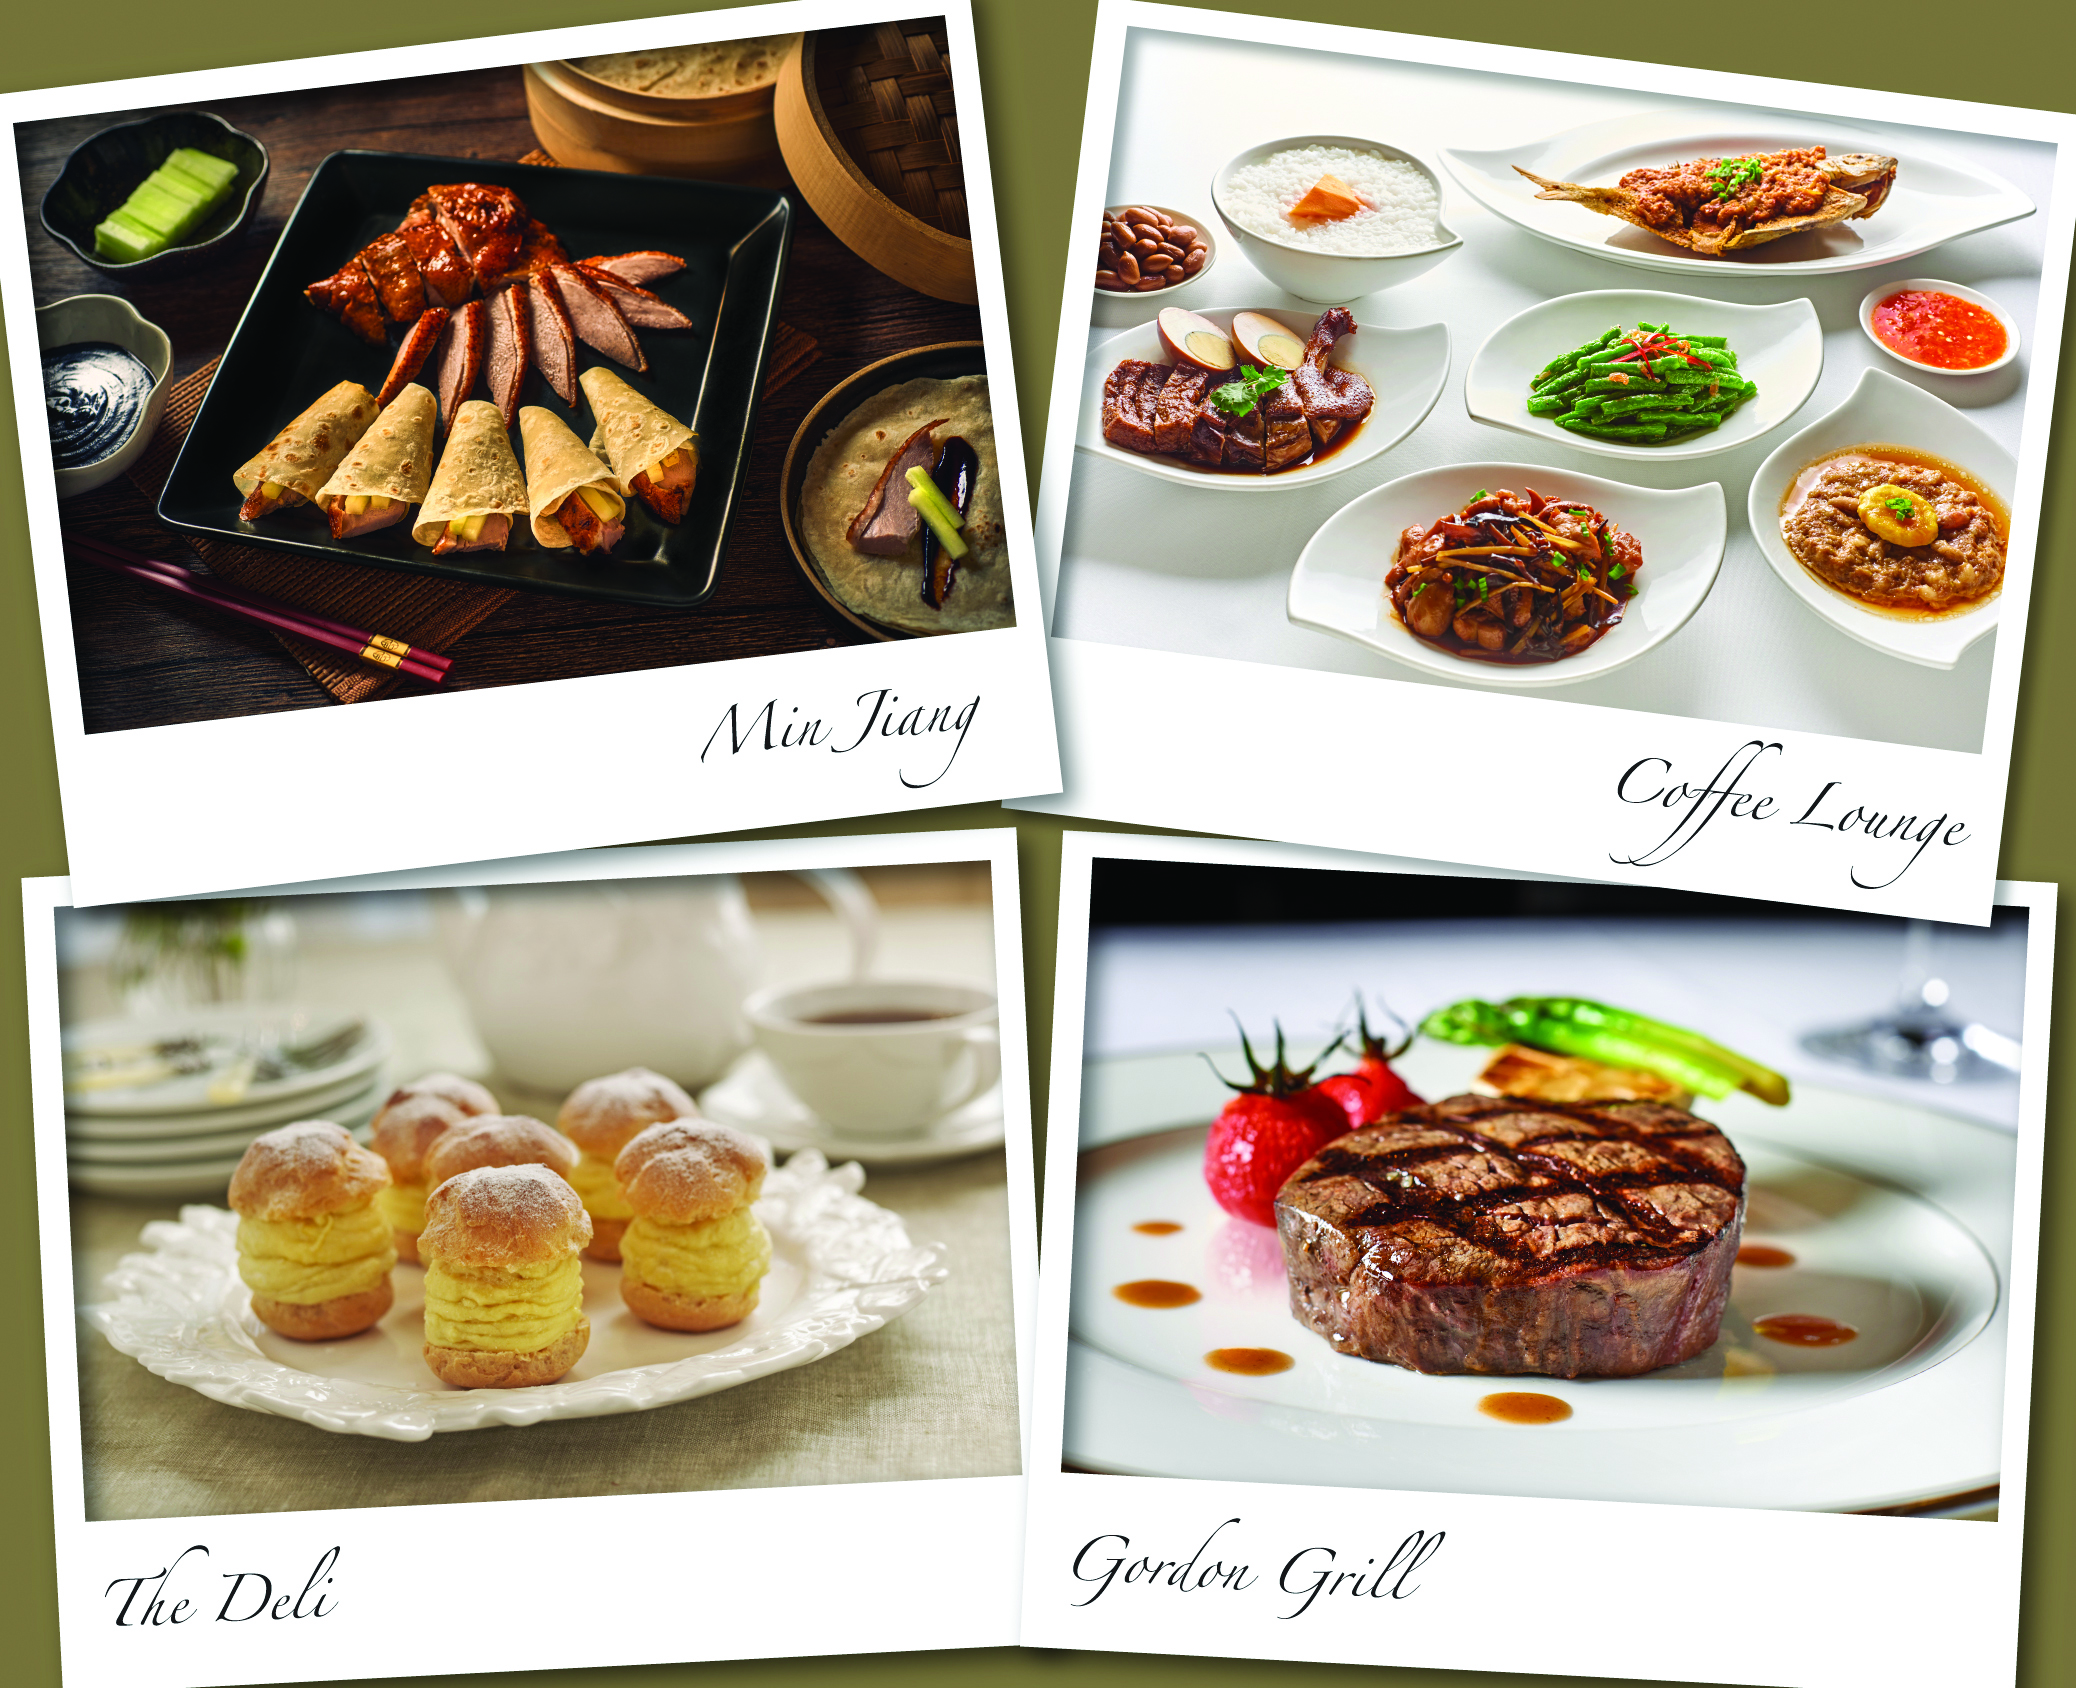 Goodwood Gourmet Experiences in the comfort of home